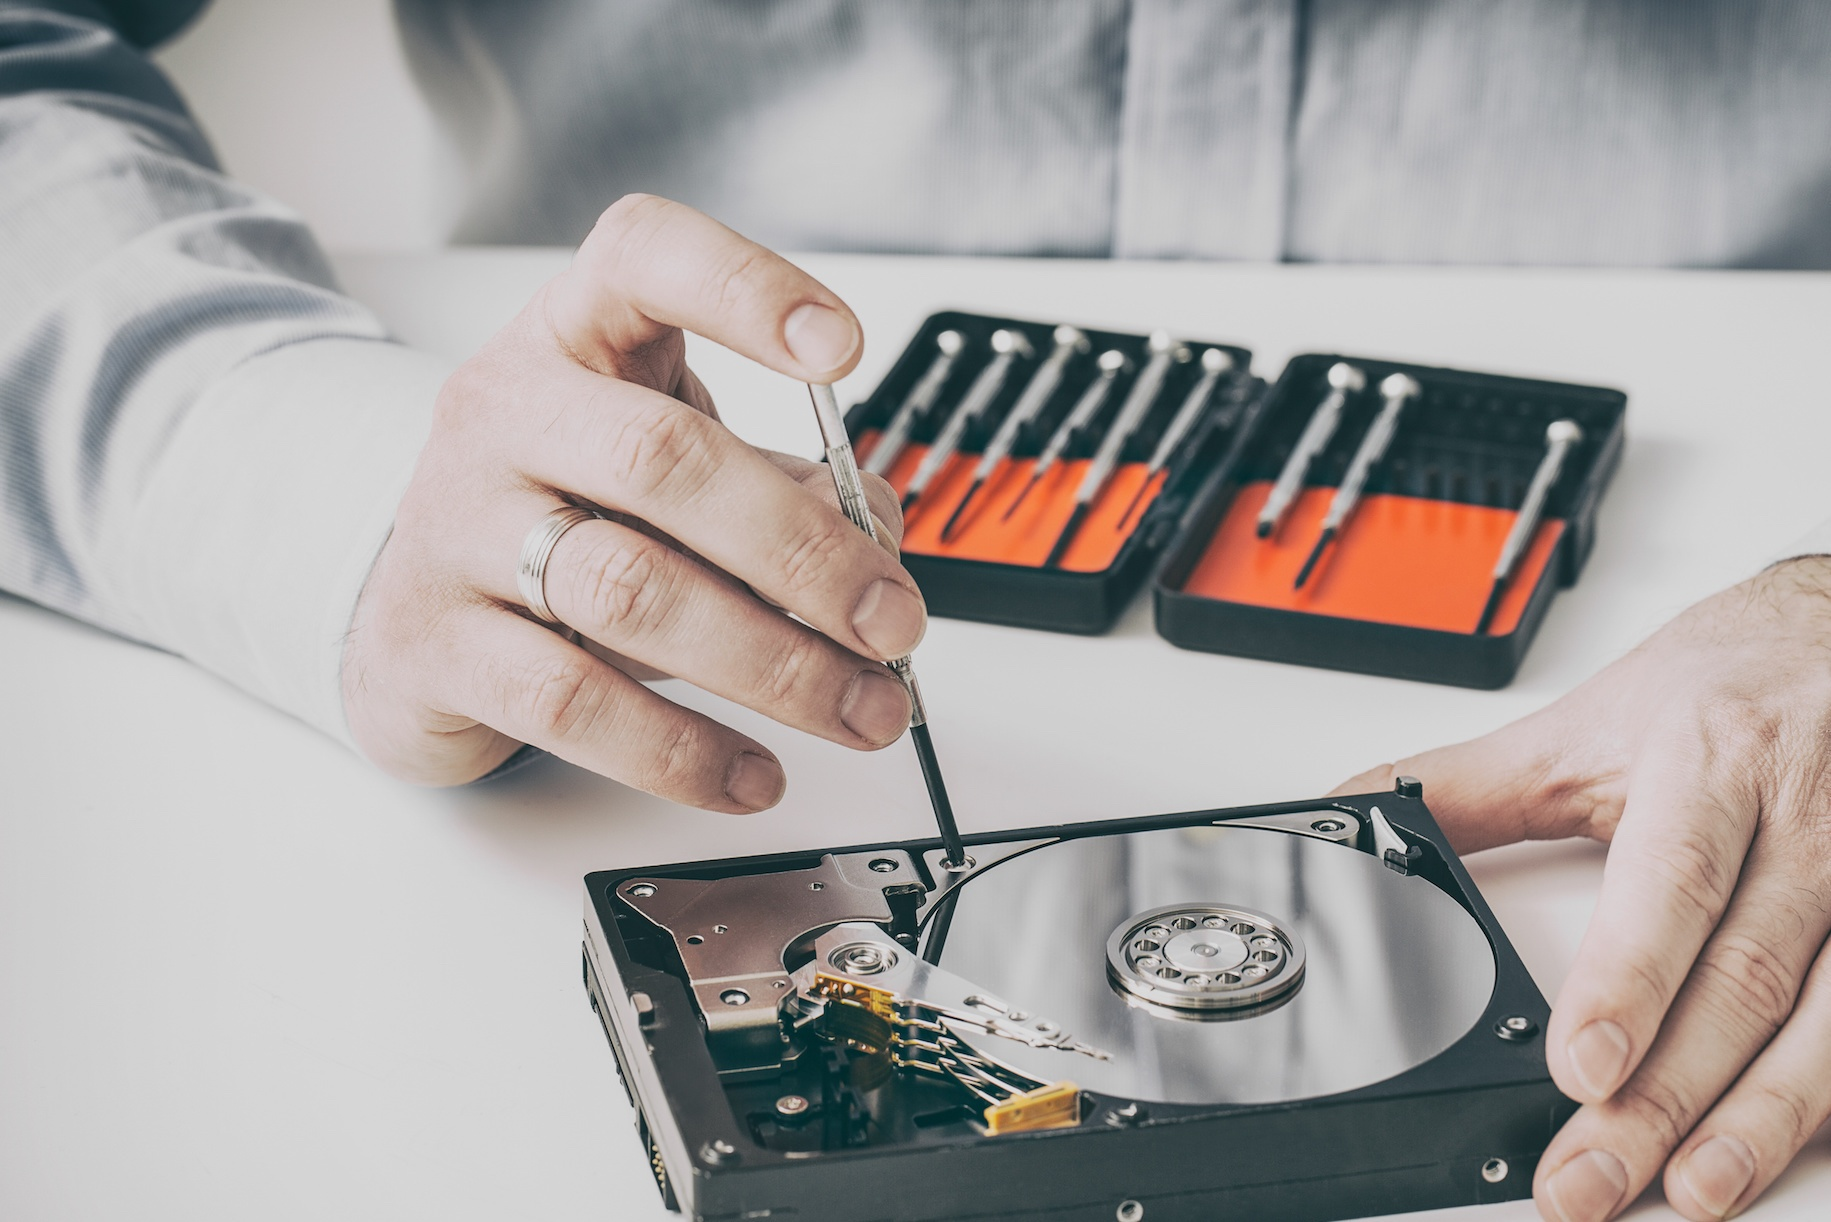 When disaster strikes, we've got you covered. - Are you prepared for a hard-drive crash, natural disaster, or malware attack?Springboard Media takes pride in our thorough data recovery services because we understand how important your information is to you. With three levels of data recovery services, our technicians can attempt recovery on nearly everything.